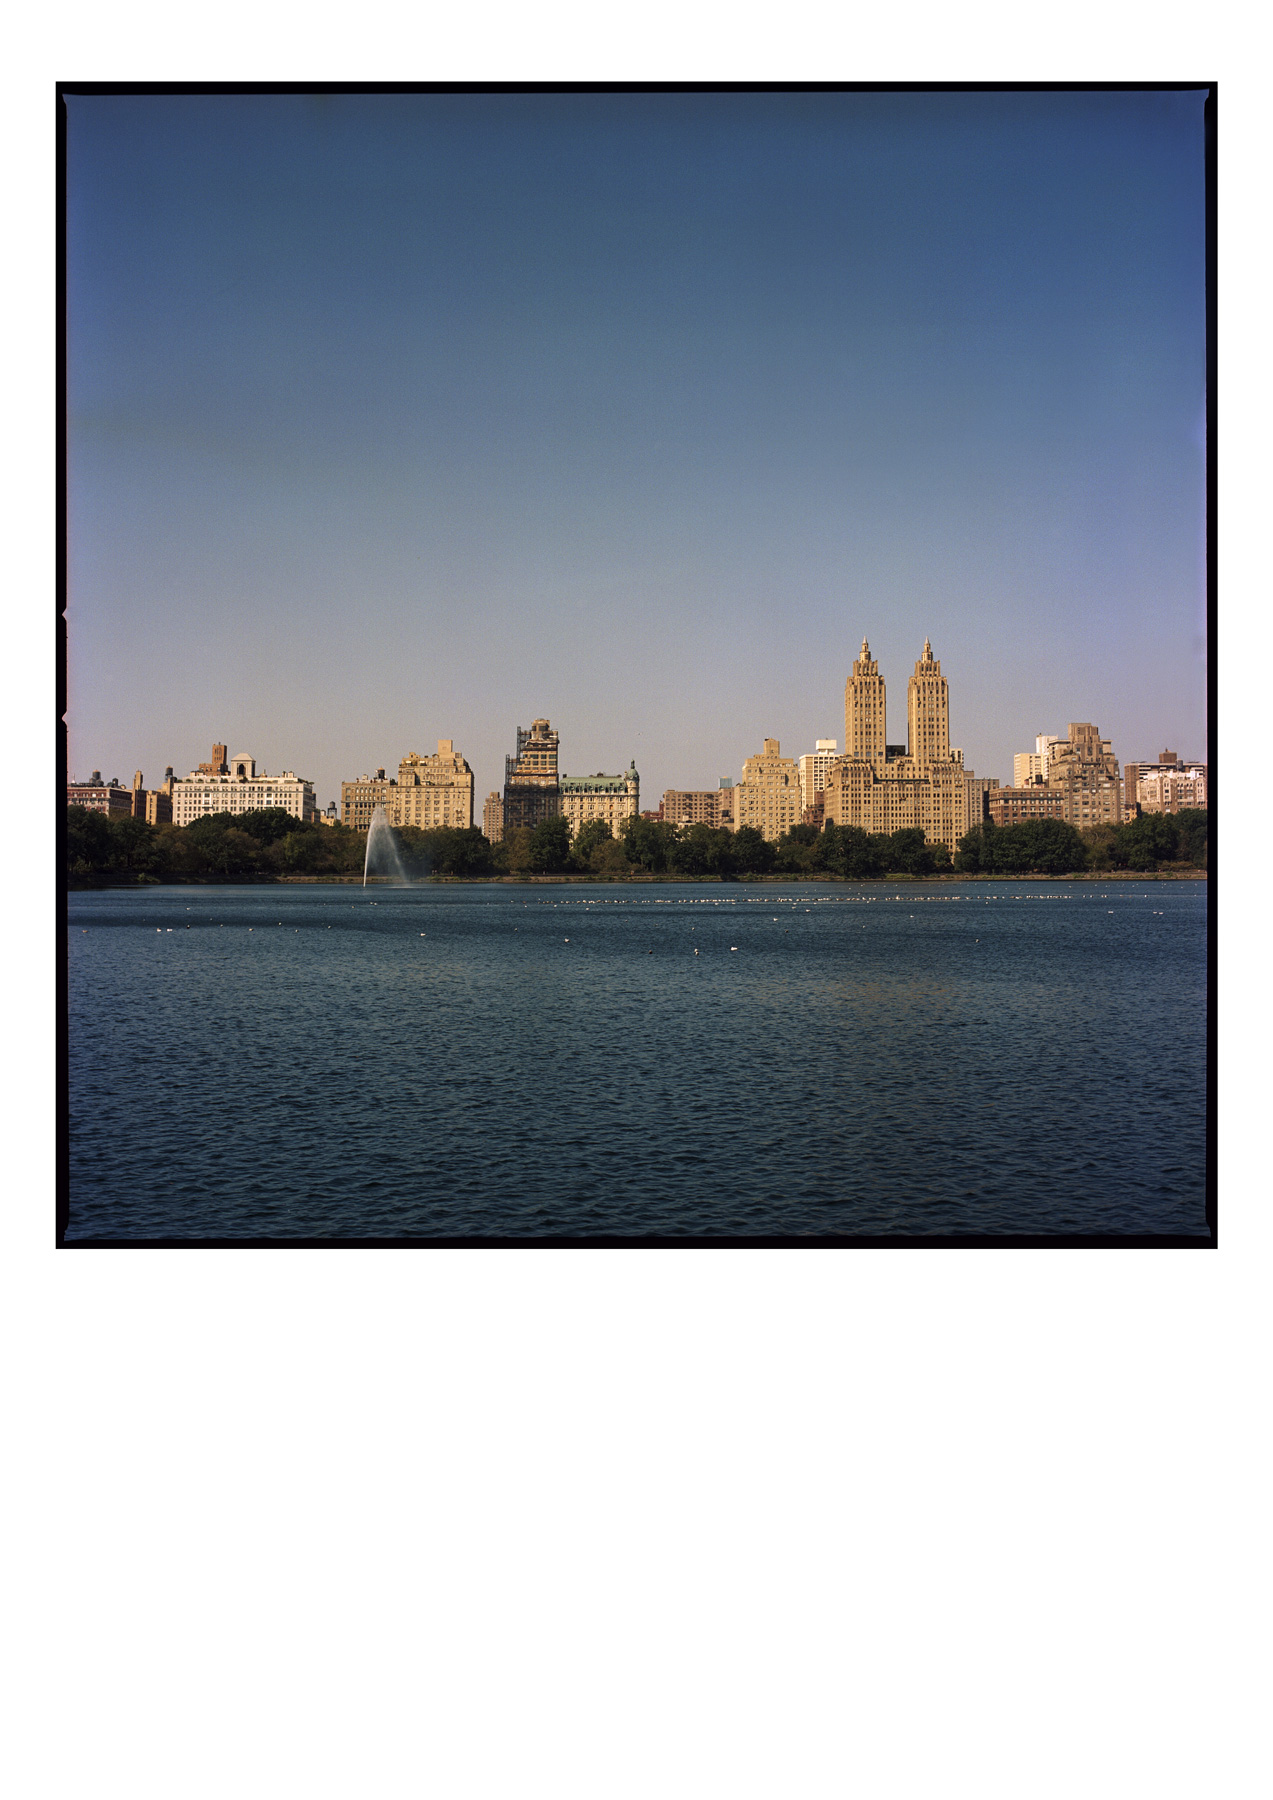 Central Park Reservoir. (Jacqueline Kennedy Onassis Reservoir) This photograph was taken on Kodak Portra 160 film in October 2019 in New York. The image scanned from negative and printed on matt archival paper using pigment inks. Archival Inkjet print using colour pigment Epson inks. On a Matt finish satin paper 10x8in print (20.3cm x 25.4cm) Medium weight 190 Limited edition print £100 GBP